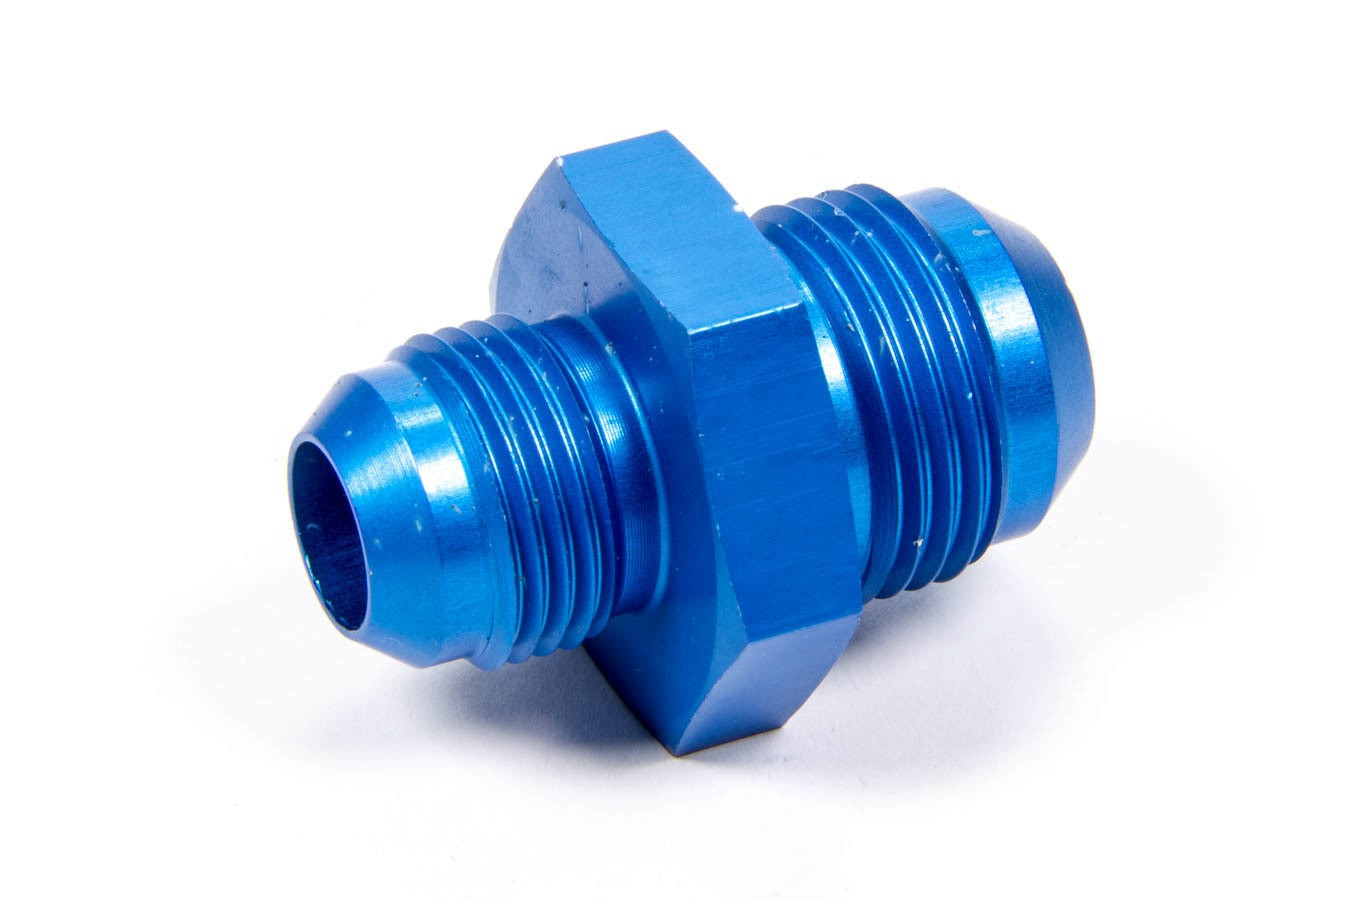 Aeroquip FCM2167 Fitting, Adapter, Straight, 12 AN Male to 10 AN Male, Aluminum, Blue Anodize, Each